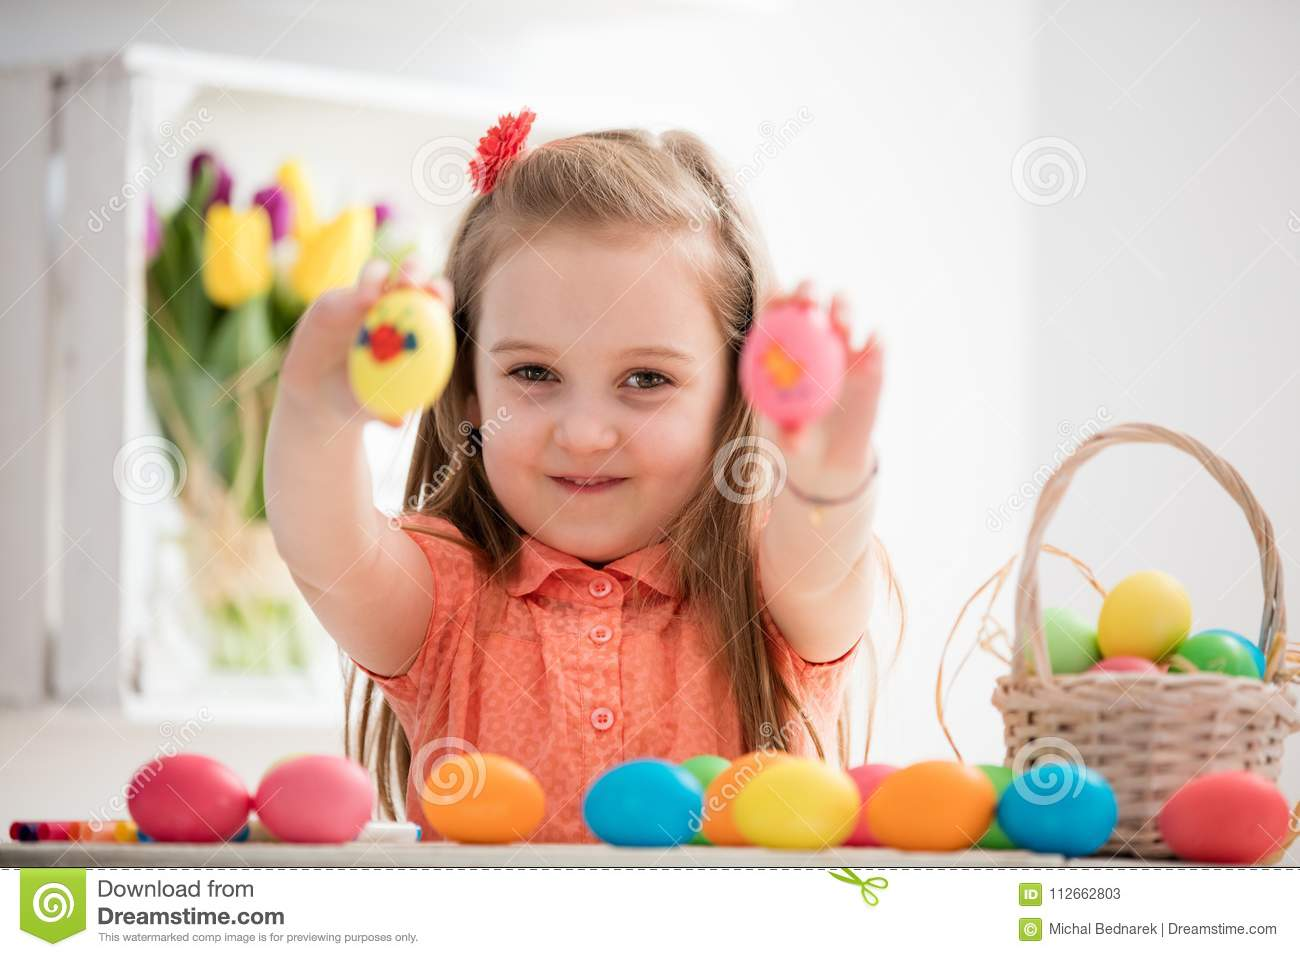 Little girl showing her hand-painted colorful eggs.